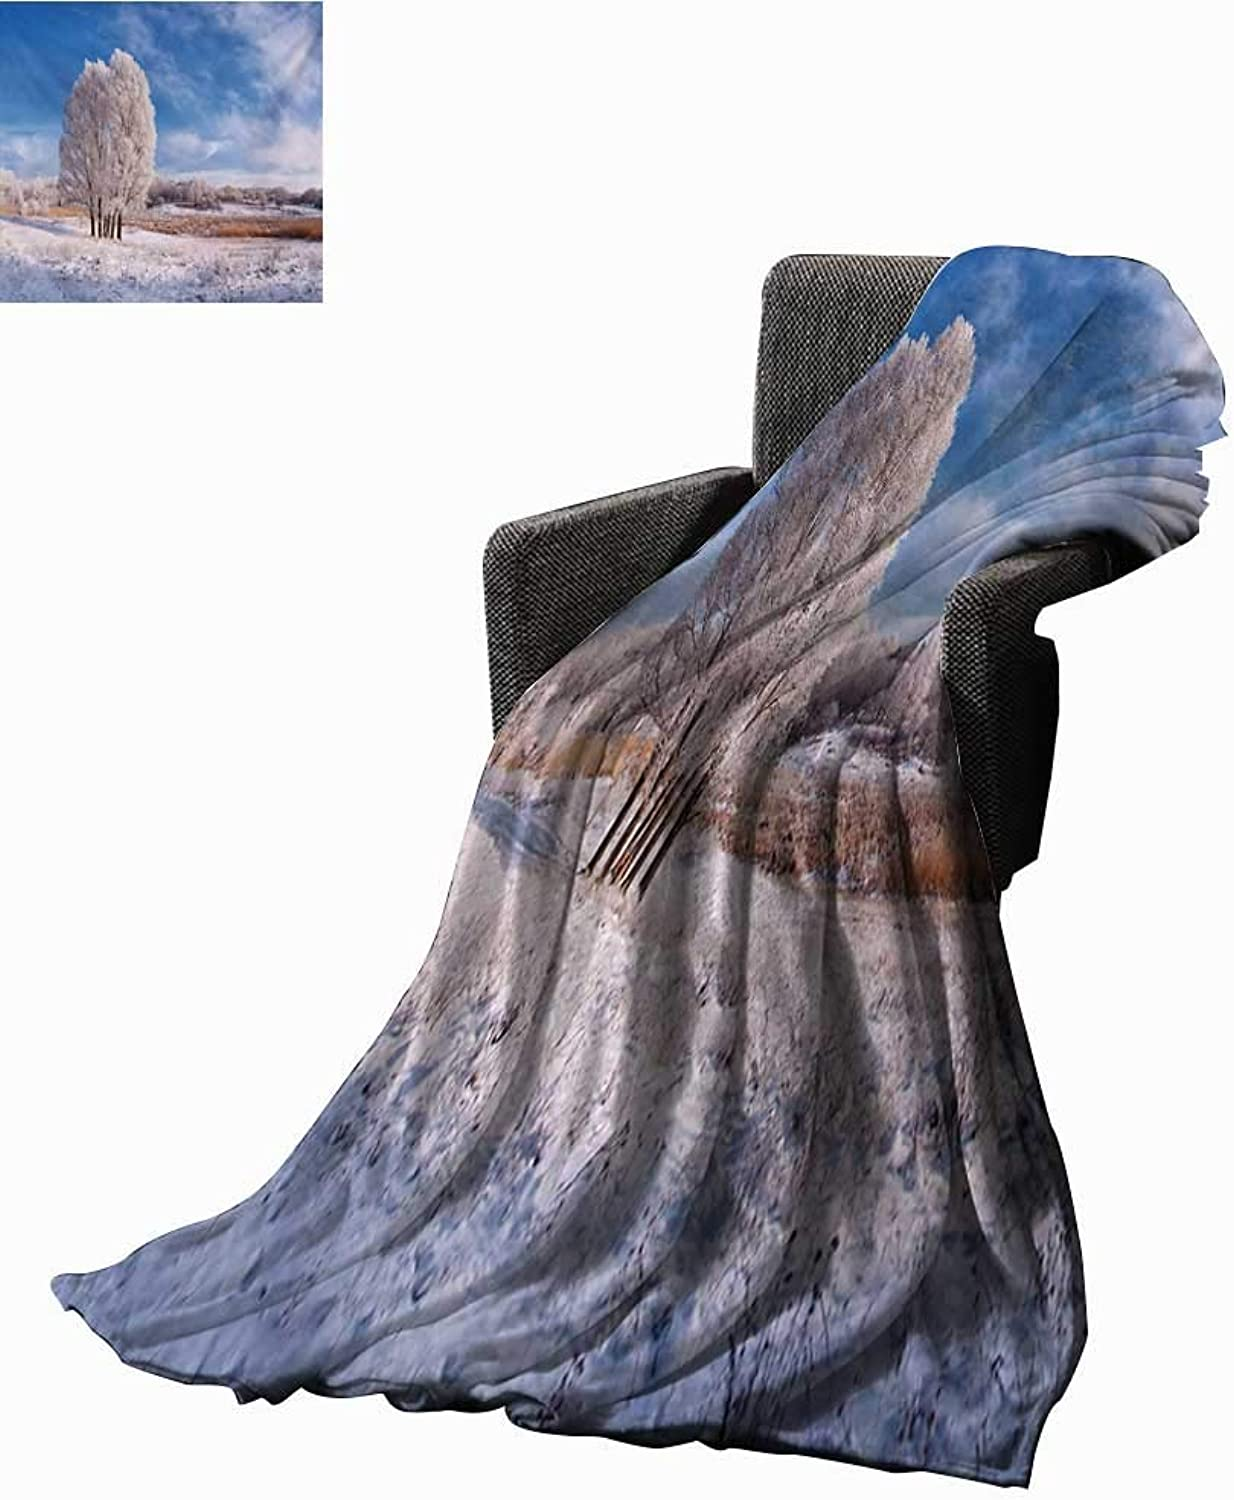 Nature Super Soft Lightweight Blanket Winter Landscape with Snowy Foliage and Tree ICY Frozen Lands Panorama,Super Soft and Comfortable,Suitable for Sofas,Chairs,beds